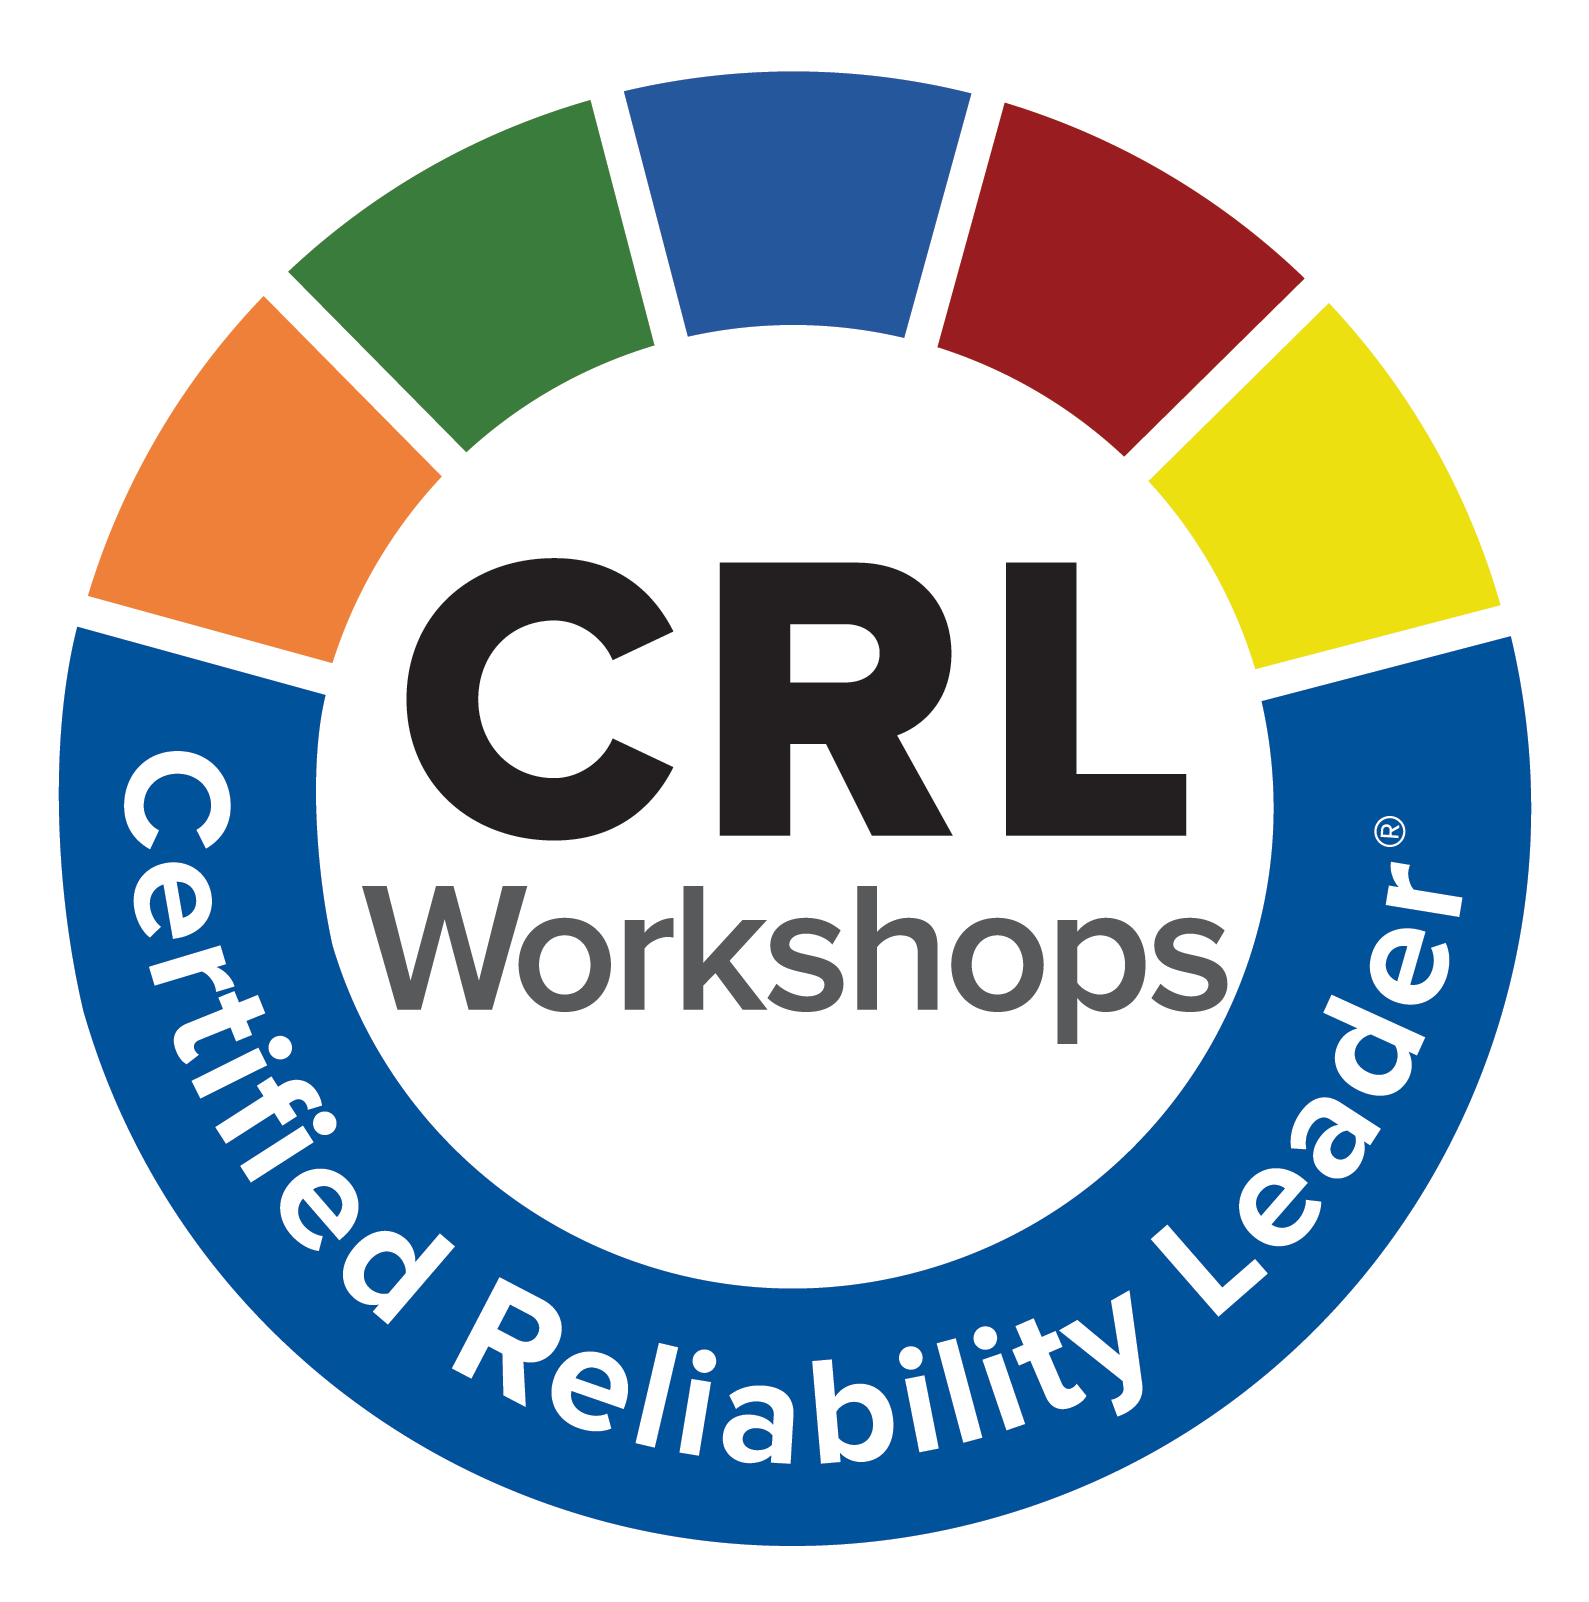 CRL Workshop